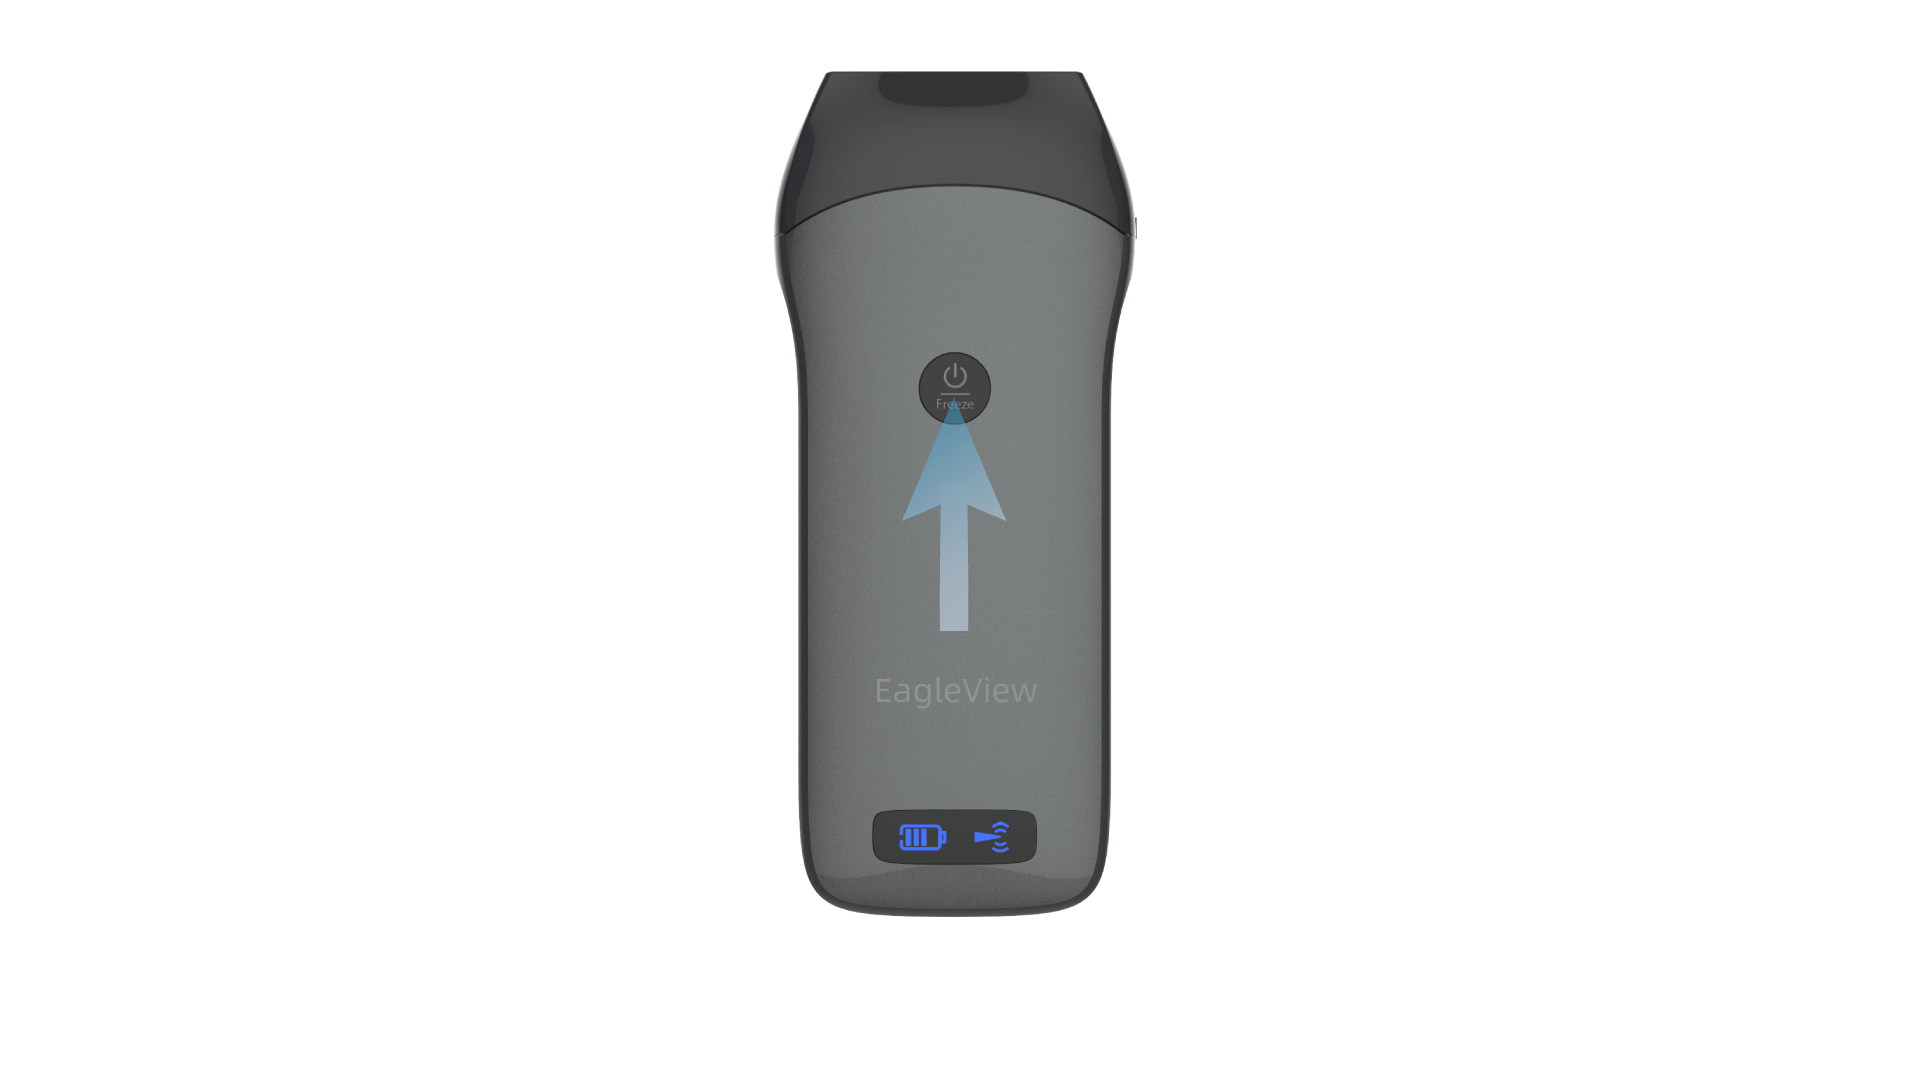 Start the Eagleview ultrasound by pressing the power button in the center.